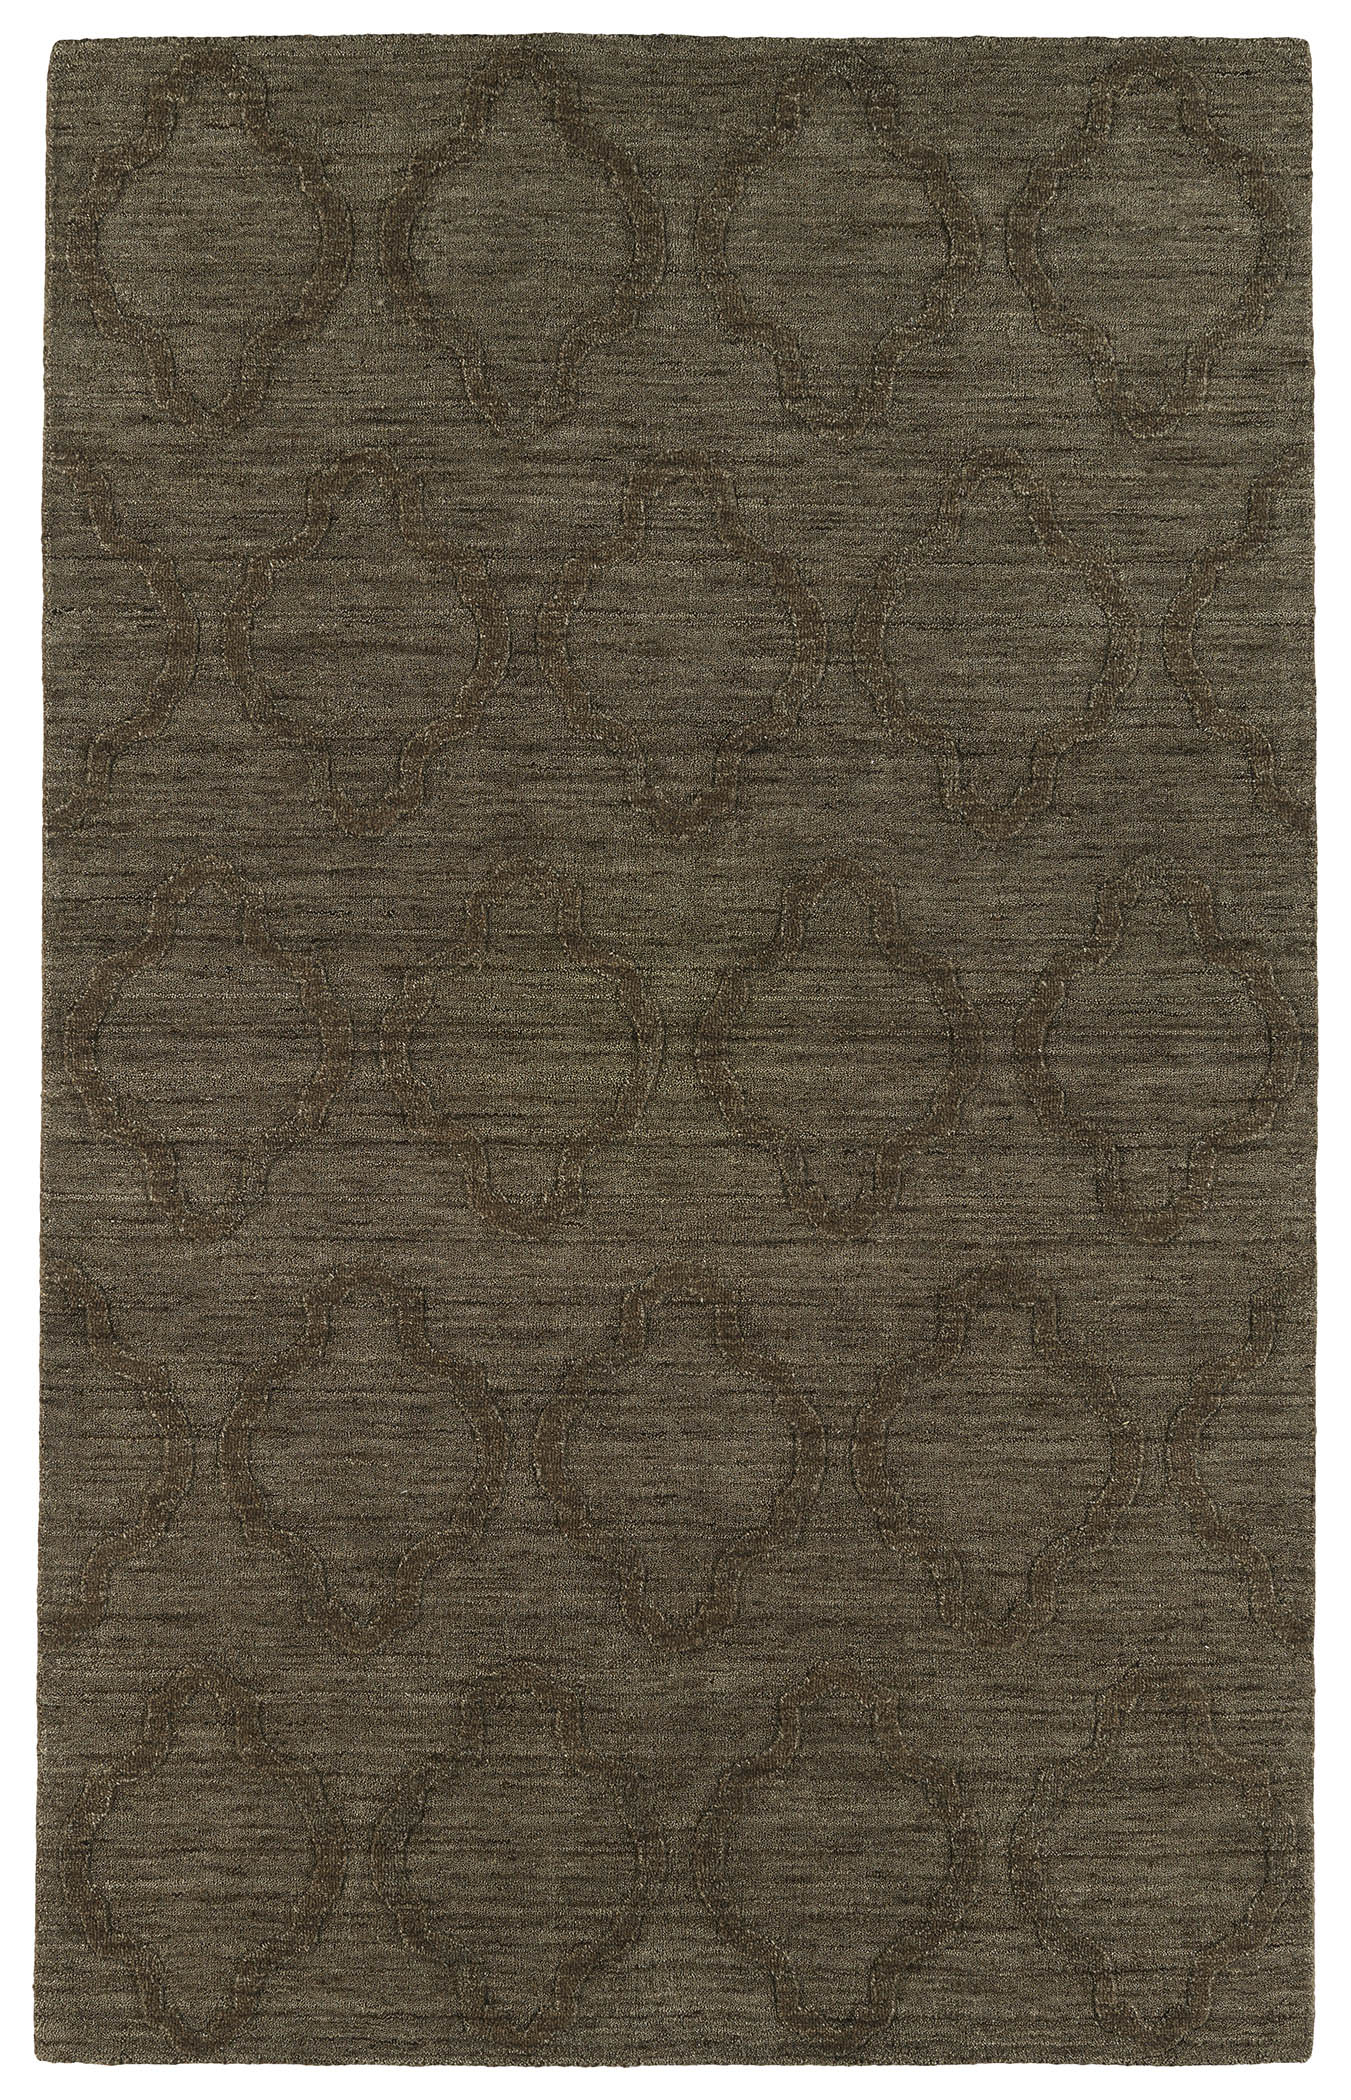 Kaleen Imprints Modern IPM02 40 Chocolate Rug